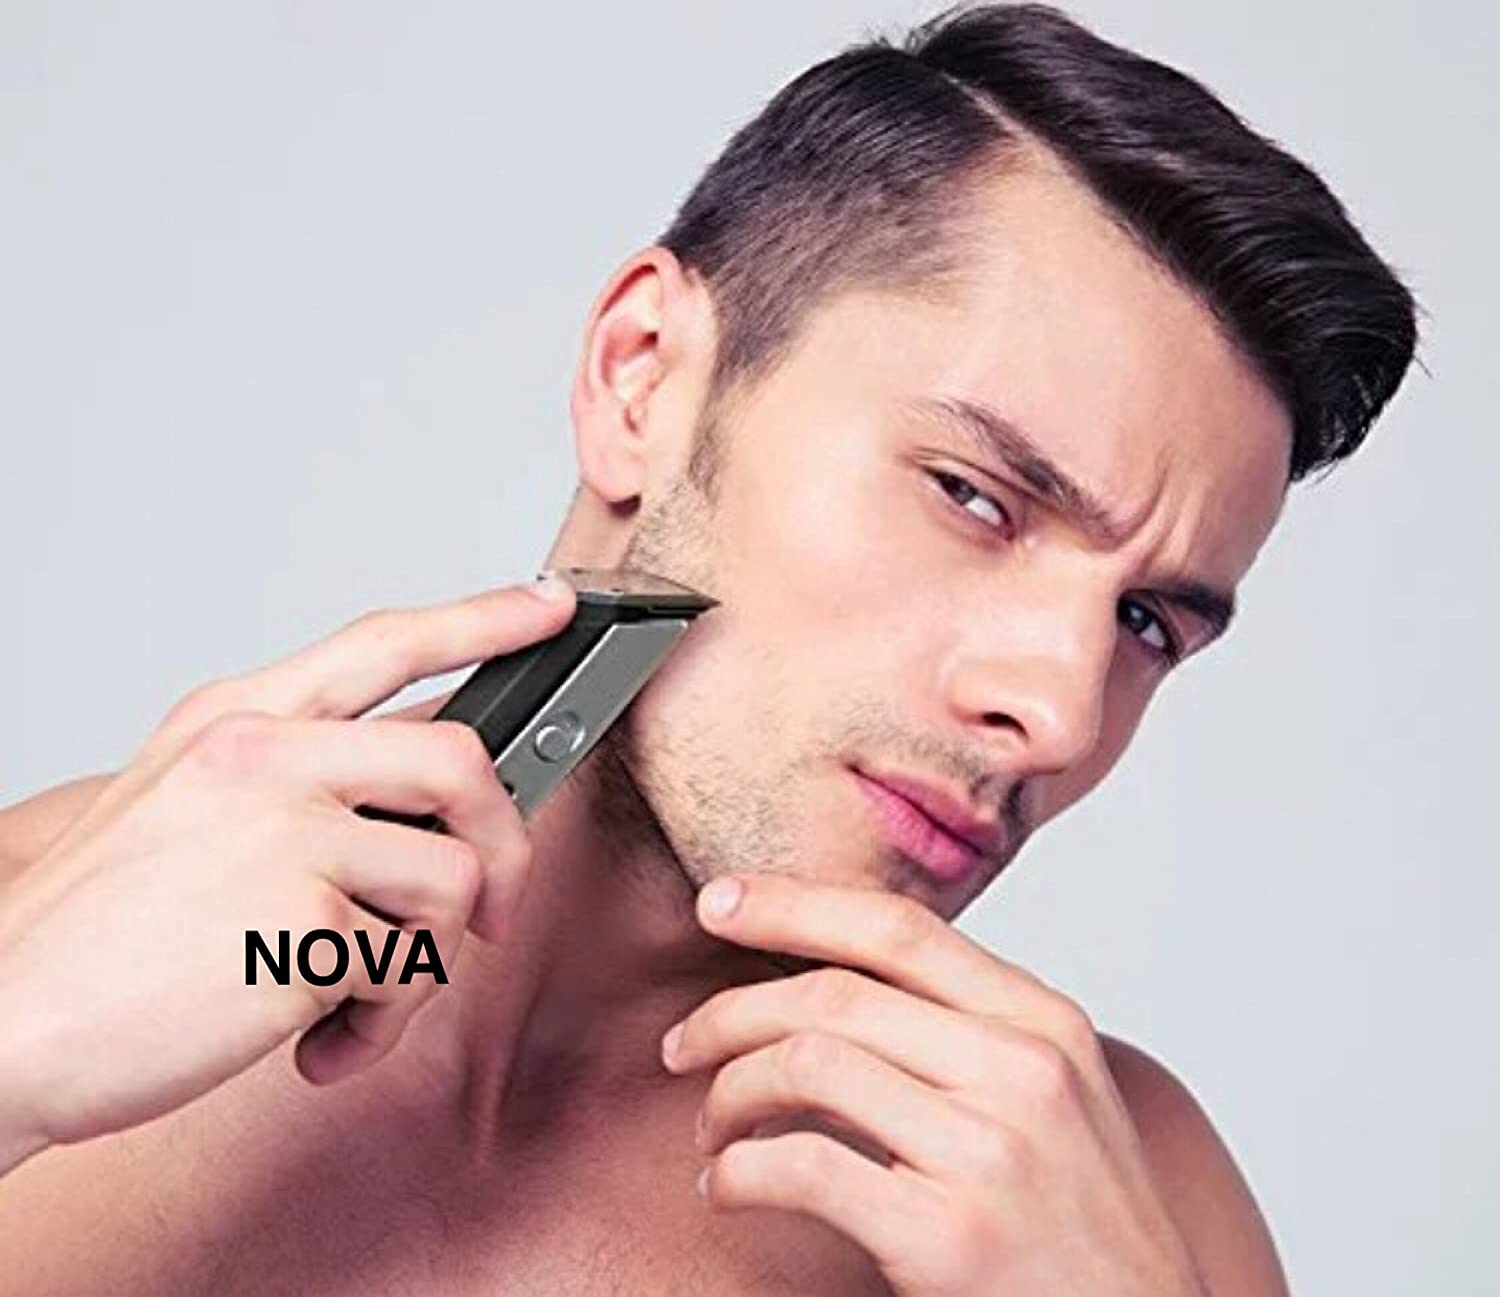 Nova NHT - 1047 Pro Skin Advance Rechargeable Cordless Beard Trimmer for Men